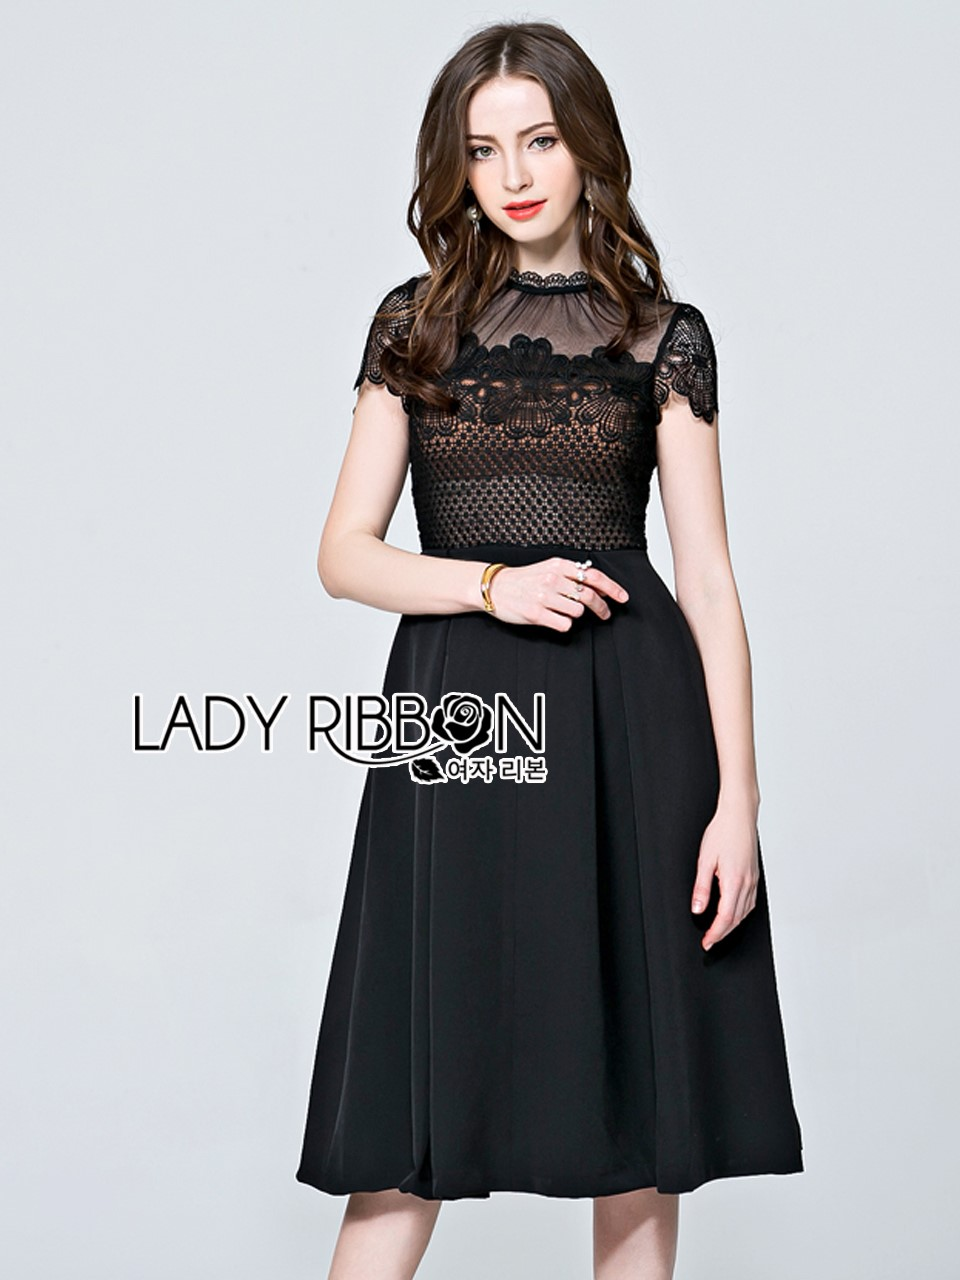 &#x1F380 Lady Ribbon's Made &#x1F380 Lady Chiara Dramatic Chic High-Neck Lace and Cotton Midi Dress